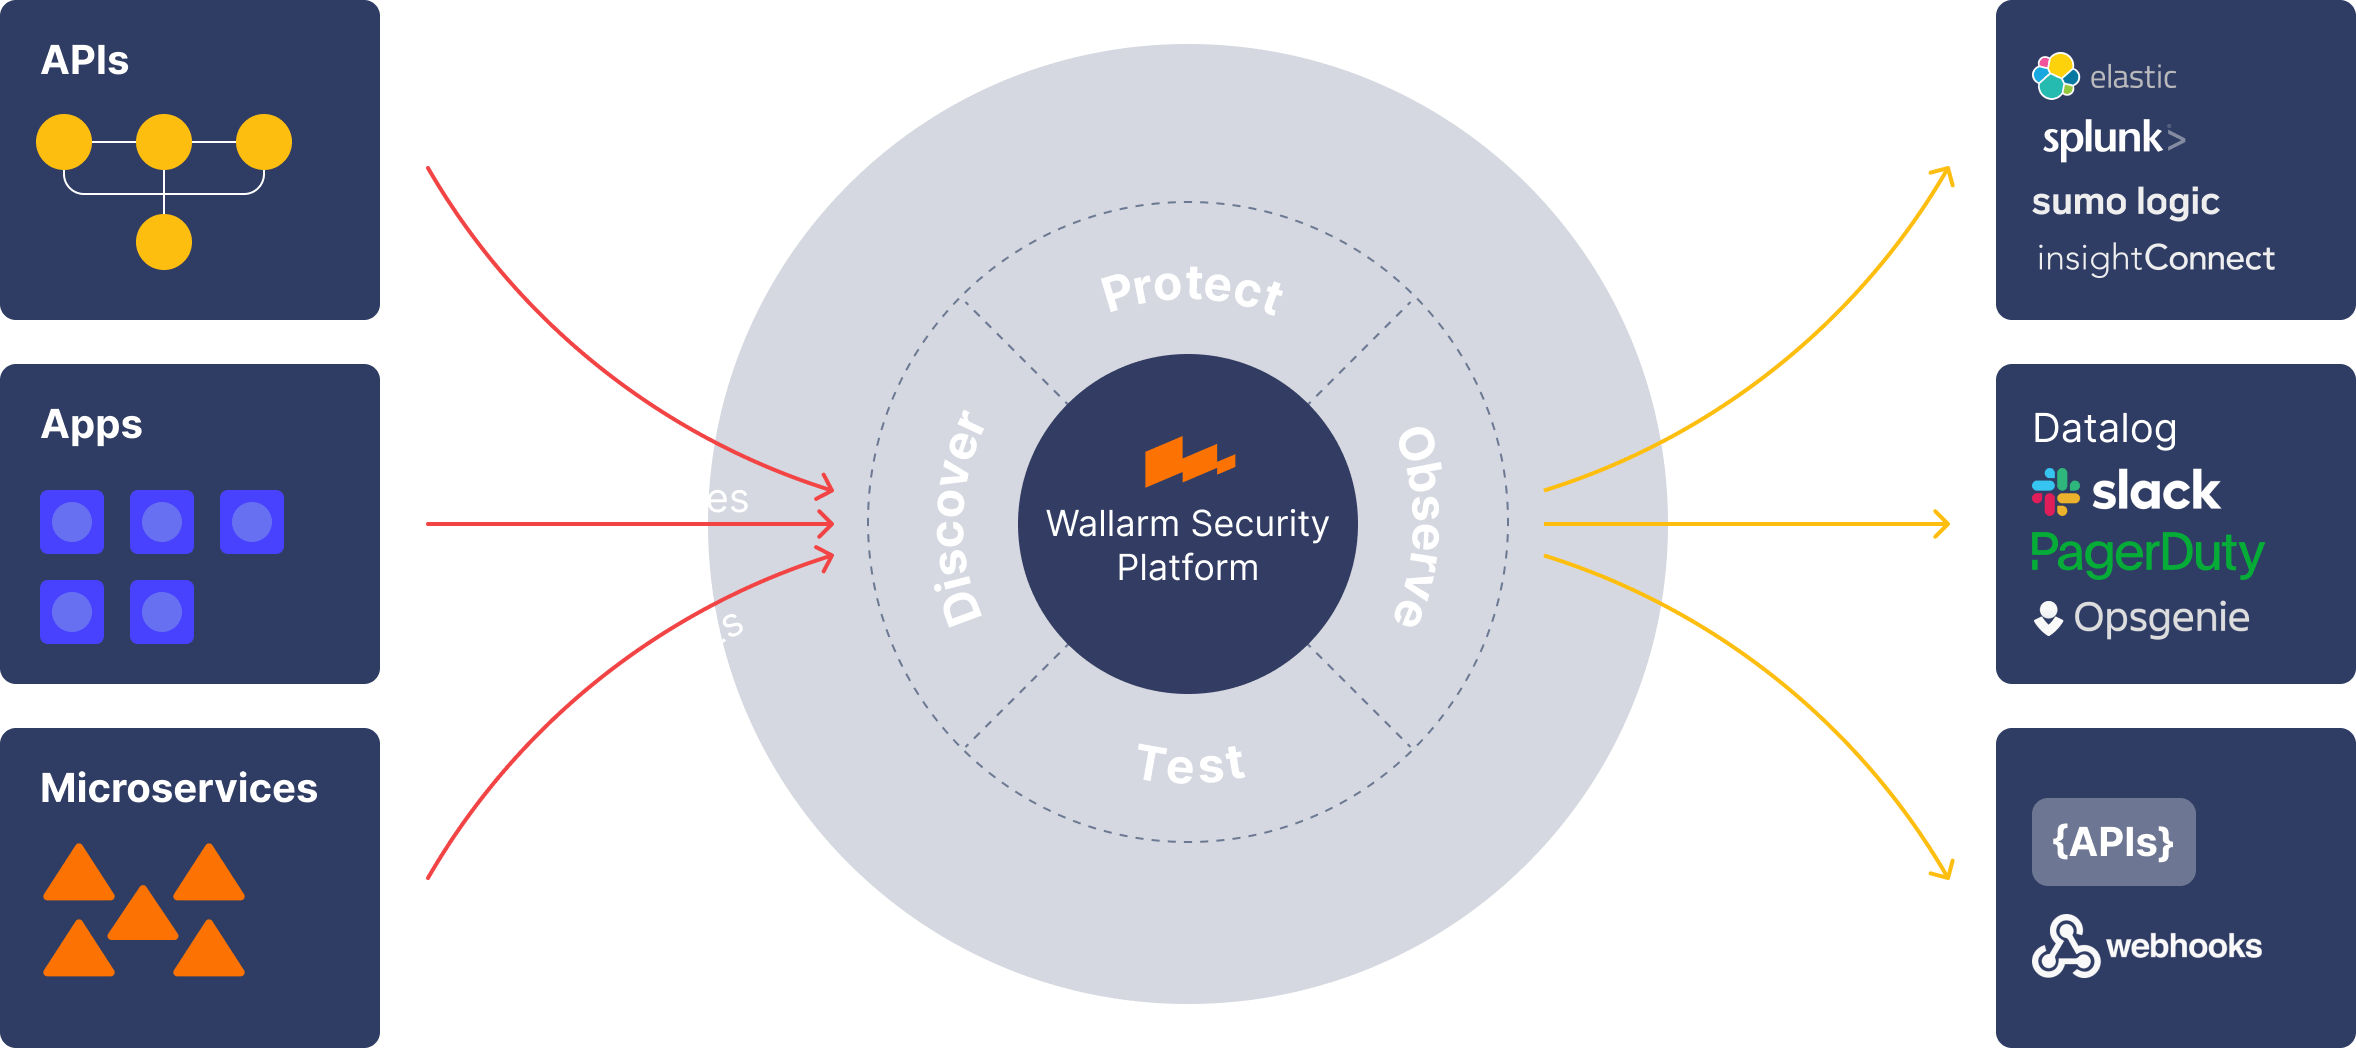 wallarm security platform